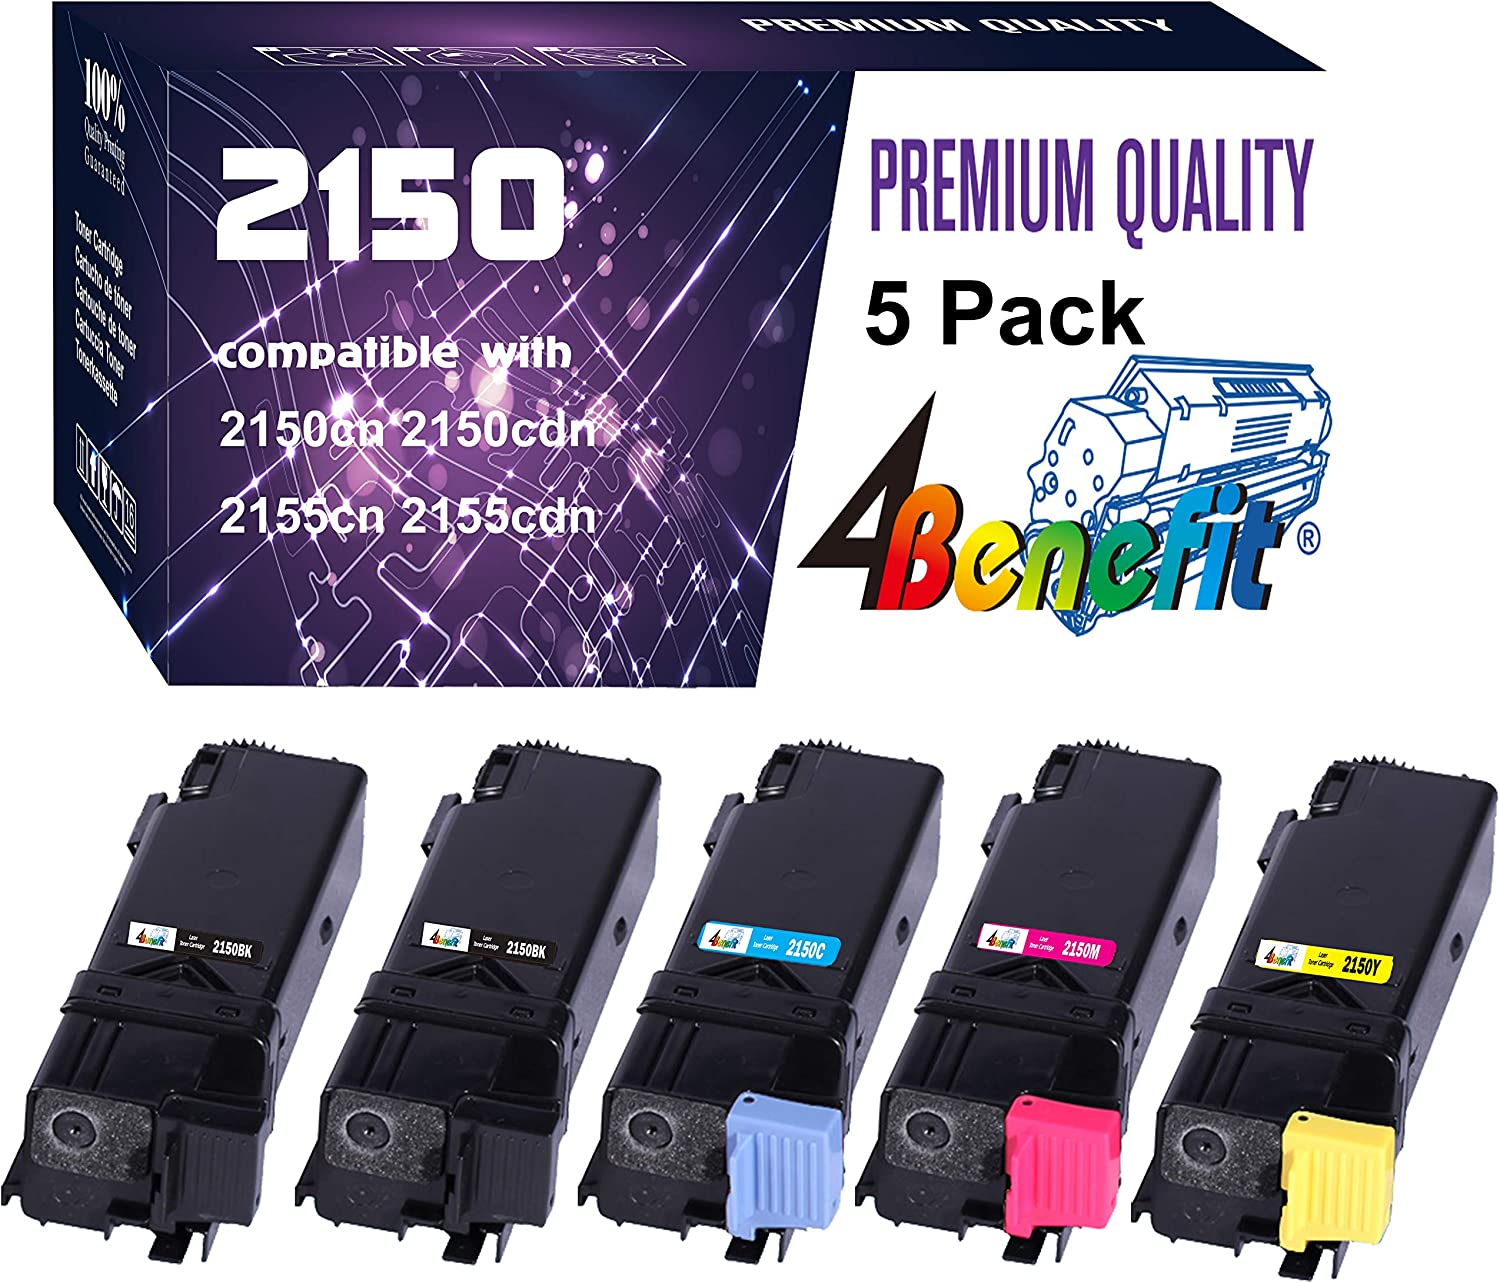 5-Pack(2 Black+1 Cyan+1 Magenta+1 Yellow) Compatible 2150 2155 2FV35 Toner Cartridge Used for Dell 2150 2150CDN 2150CN 2155 2155CDN 2155CN Printers, by 4Benefit